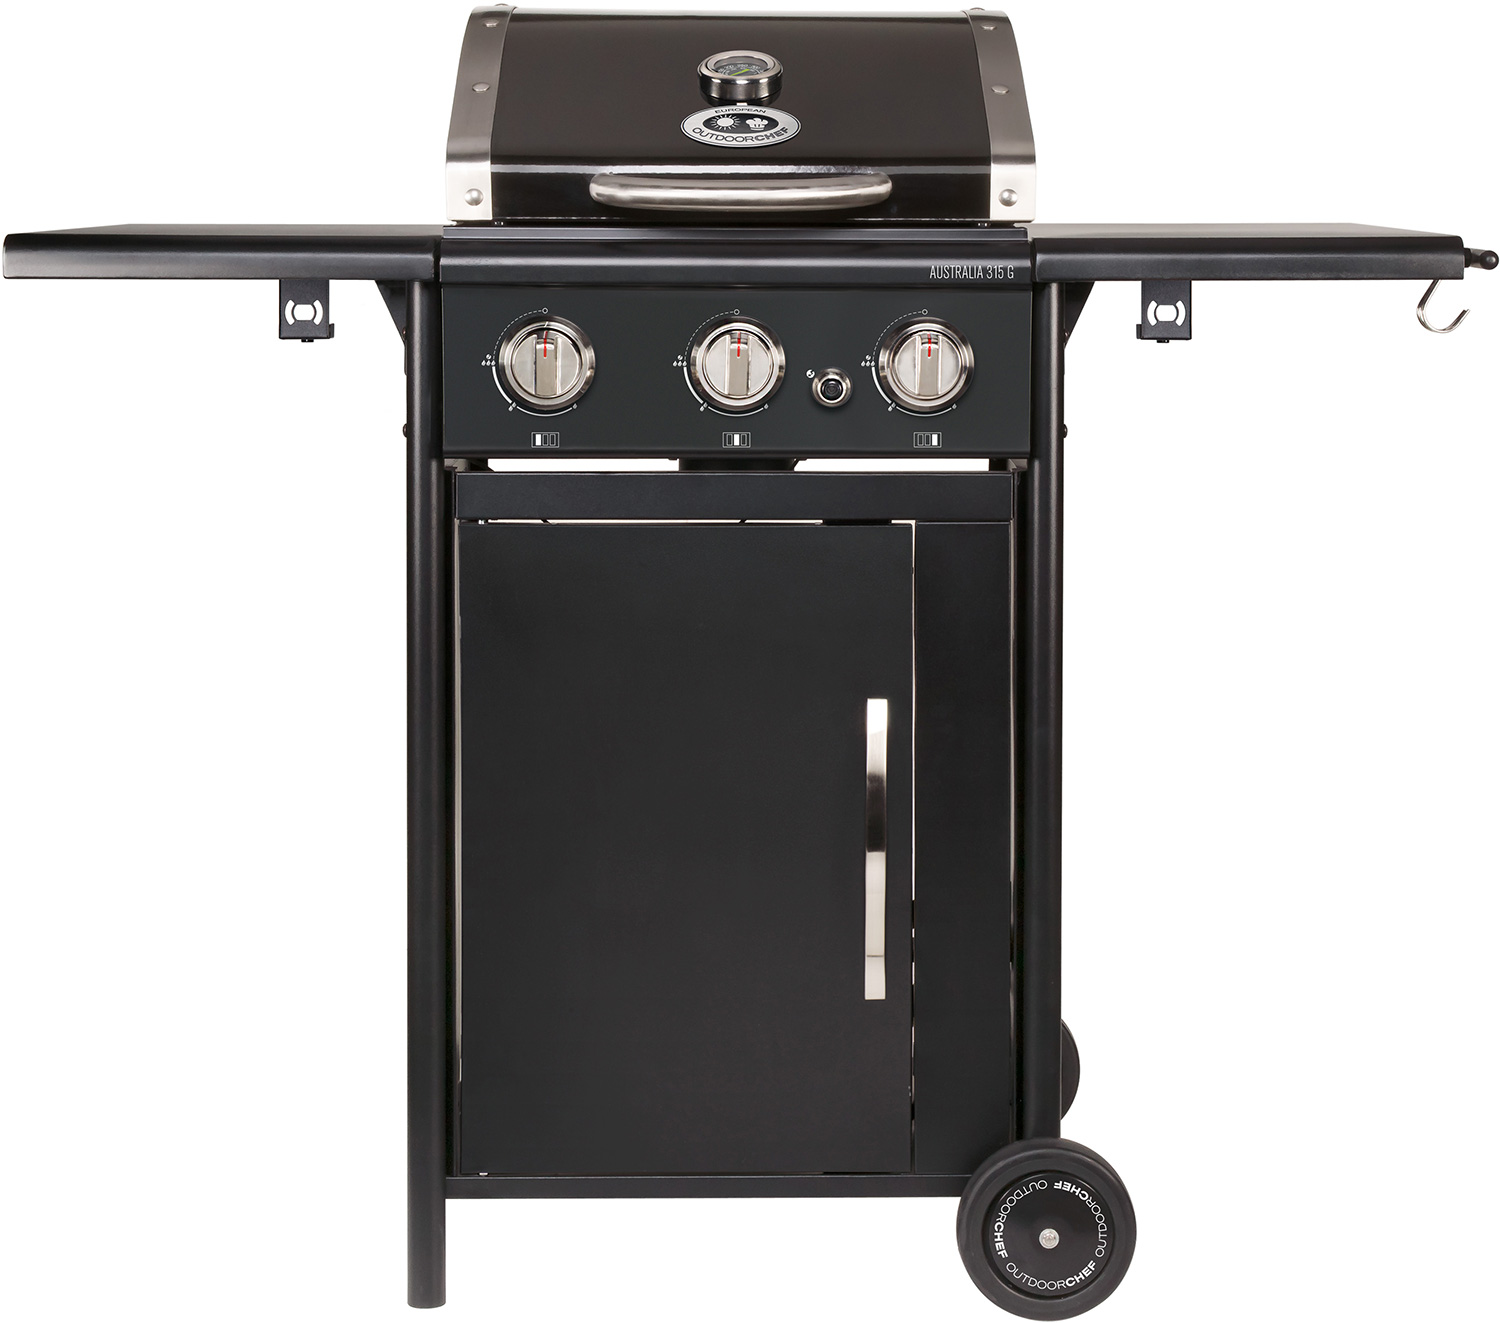 outdoorchef gasgrill australia 315 g kaufen grillstation gasgrillstation. Black Bedroom Furniture Sets. Home Design Ideas